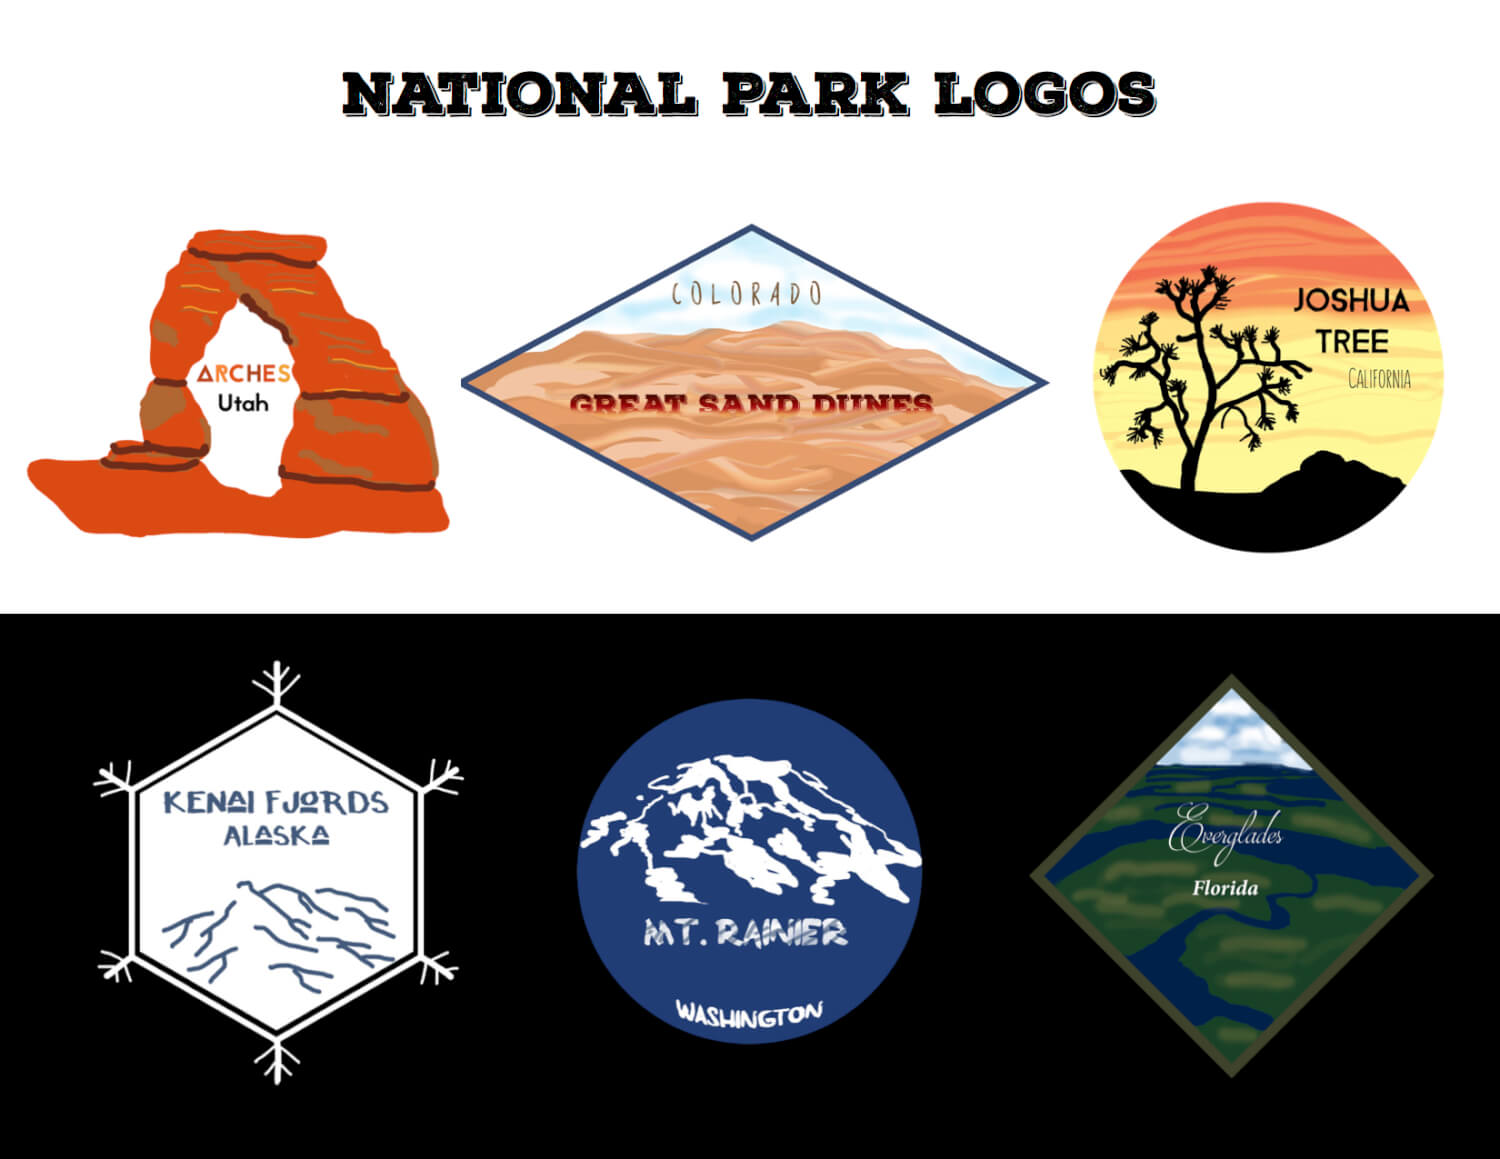 National Park Logos from Rebecca Helen Photography & Tribelhorn Art & Design